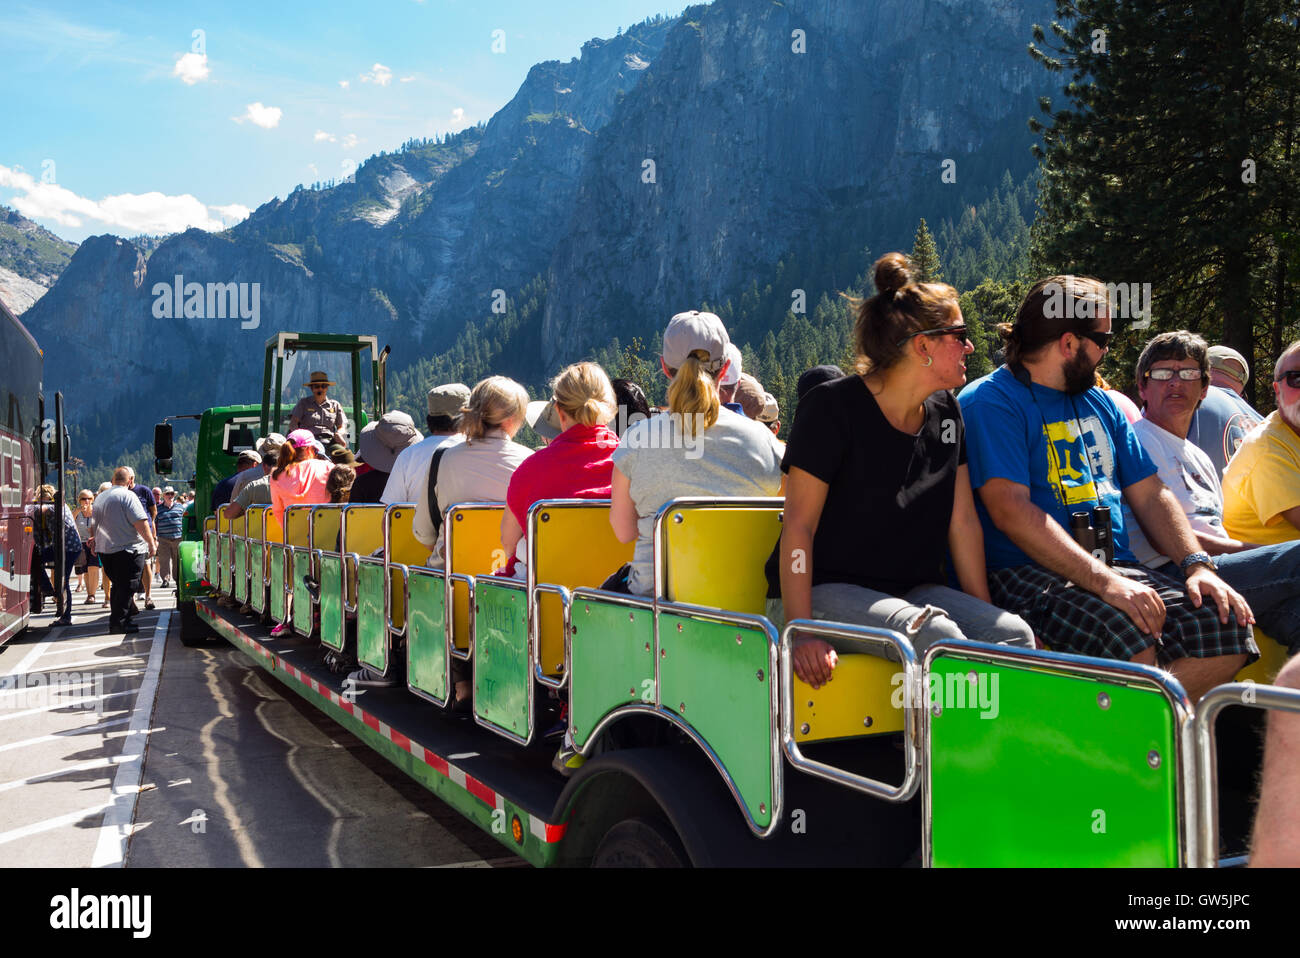 Yosemite Park, USA - September 25, 2015: Tourist ready for a guided tour in the park - Stock Image